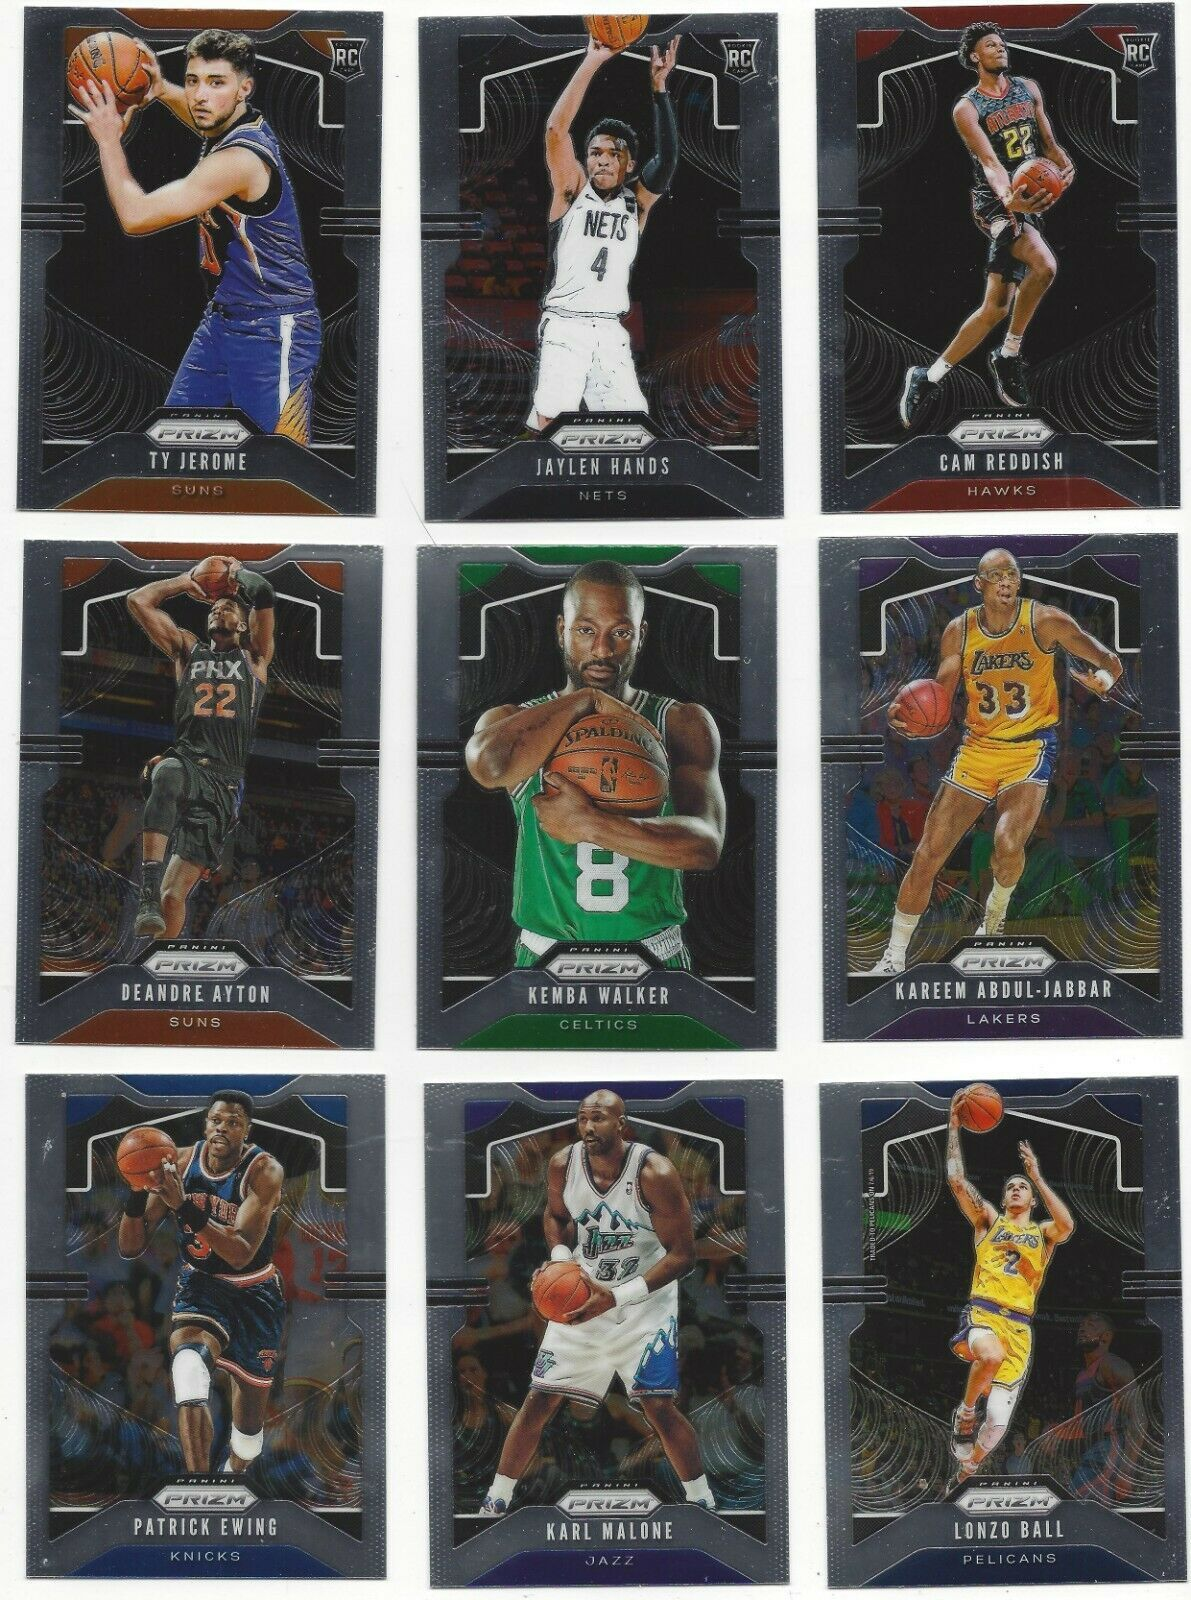 Primary image for 2019-20 PANINI PRIZM BASE ( RC's, STARS ) - WHO DO YOU NEED!!!